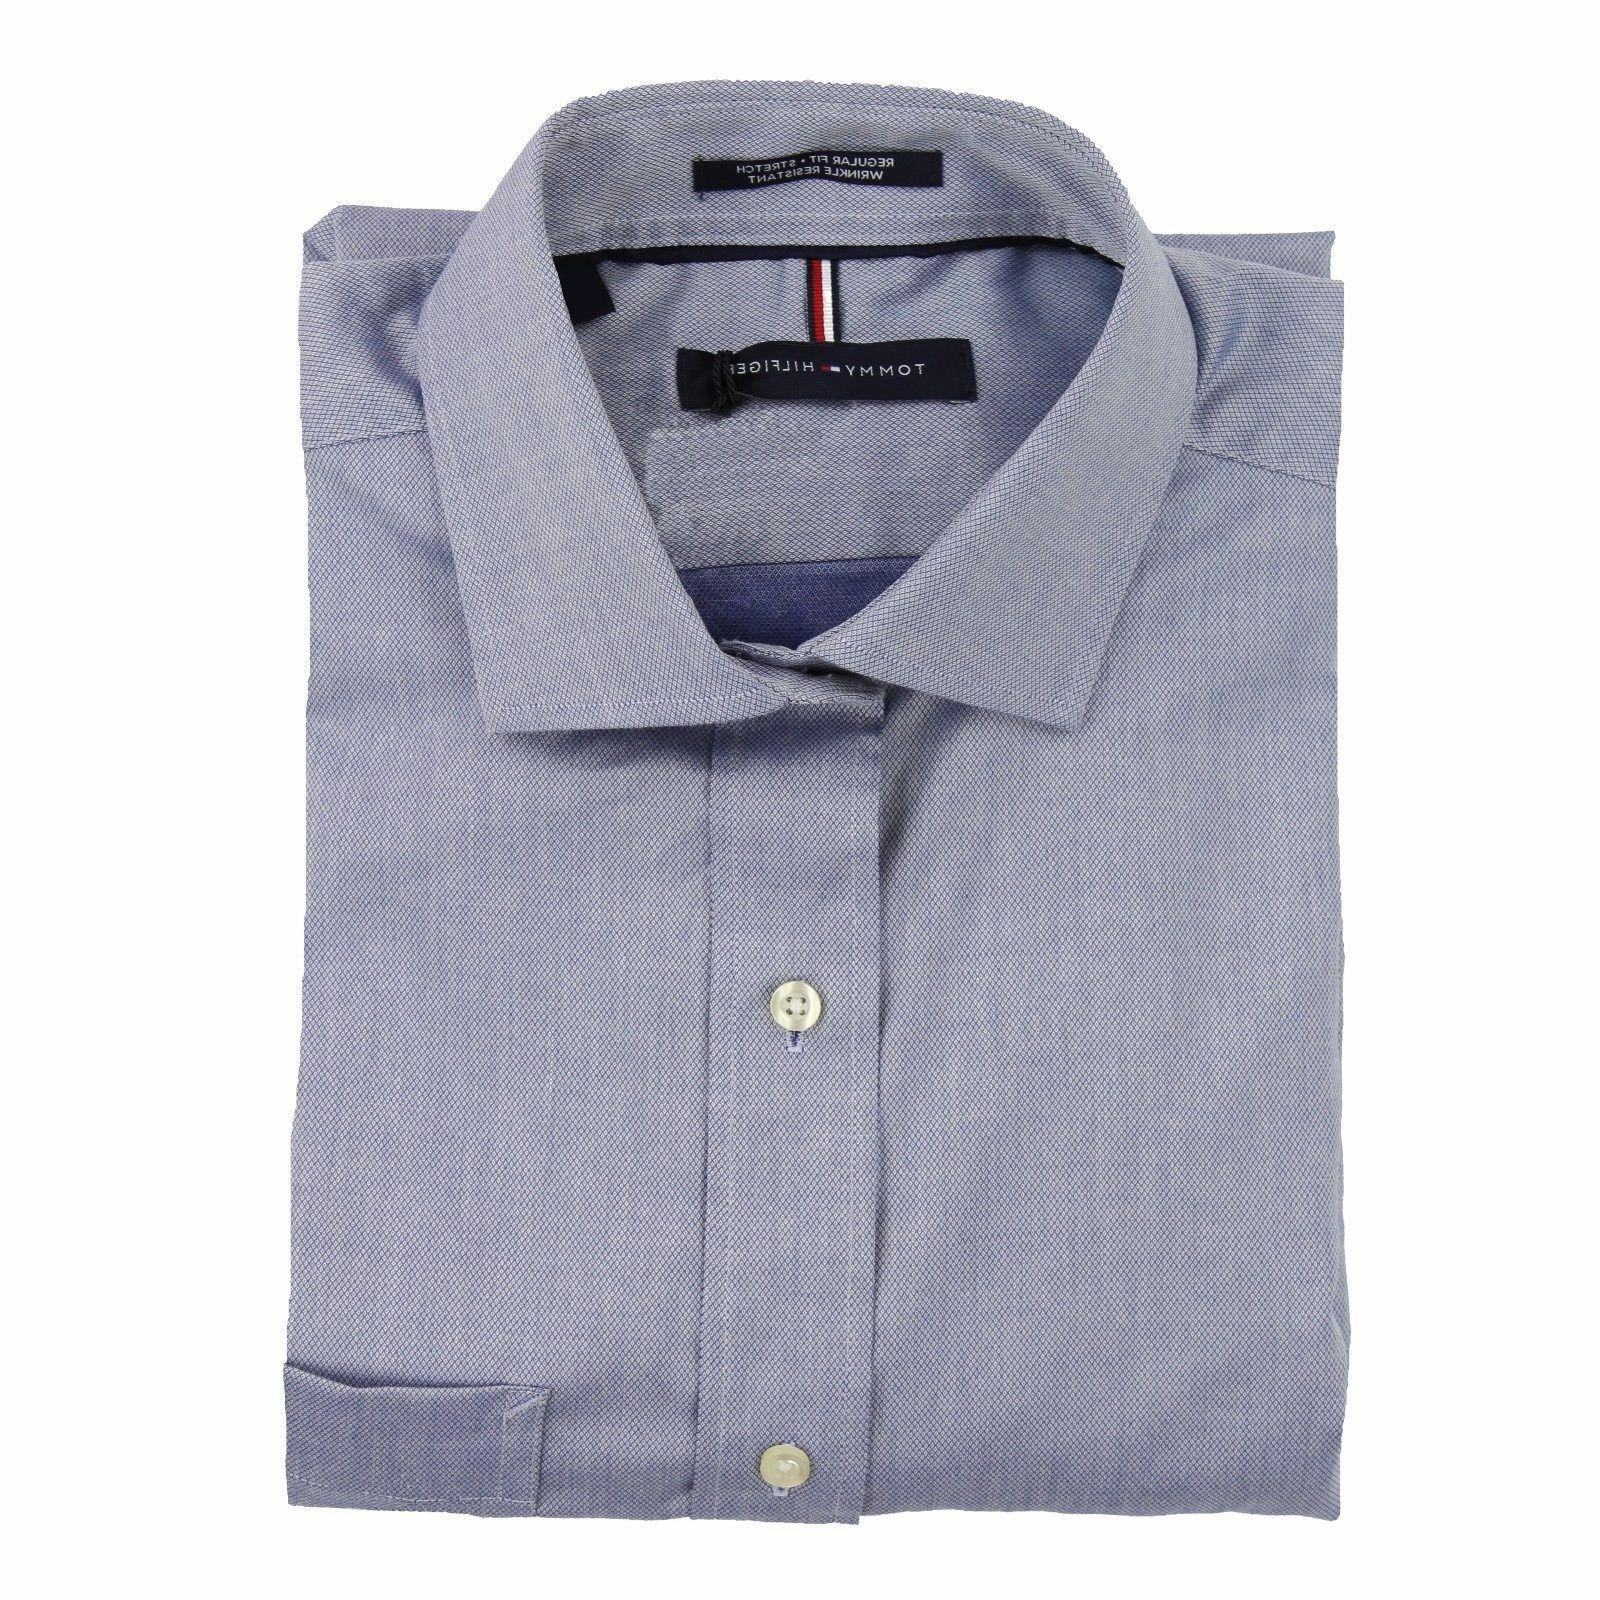 Tommy Hilfiger Fit Wrinkle Resistant Stretch Shirt Variety Sizes